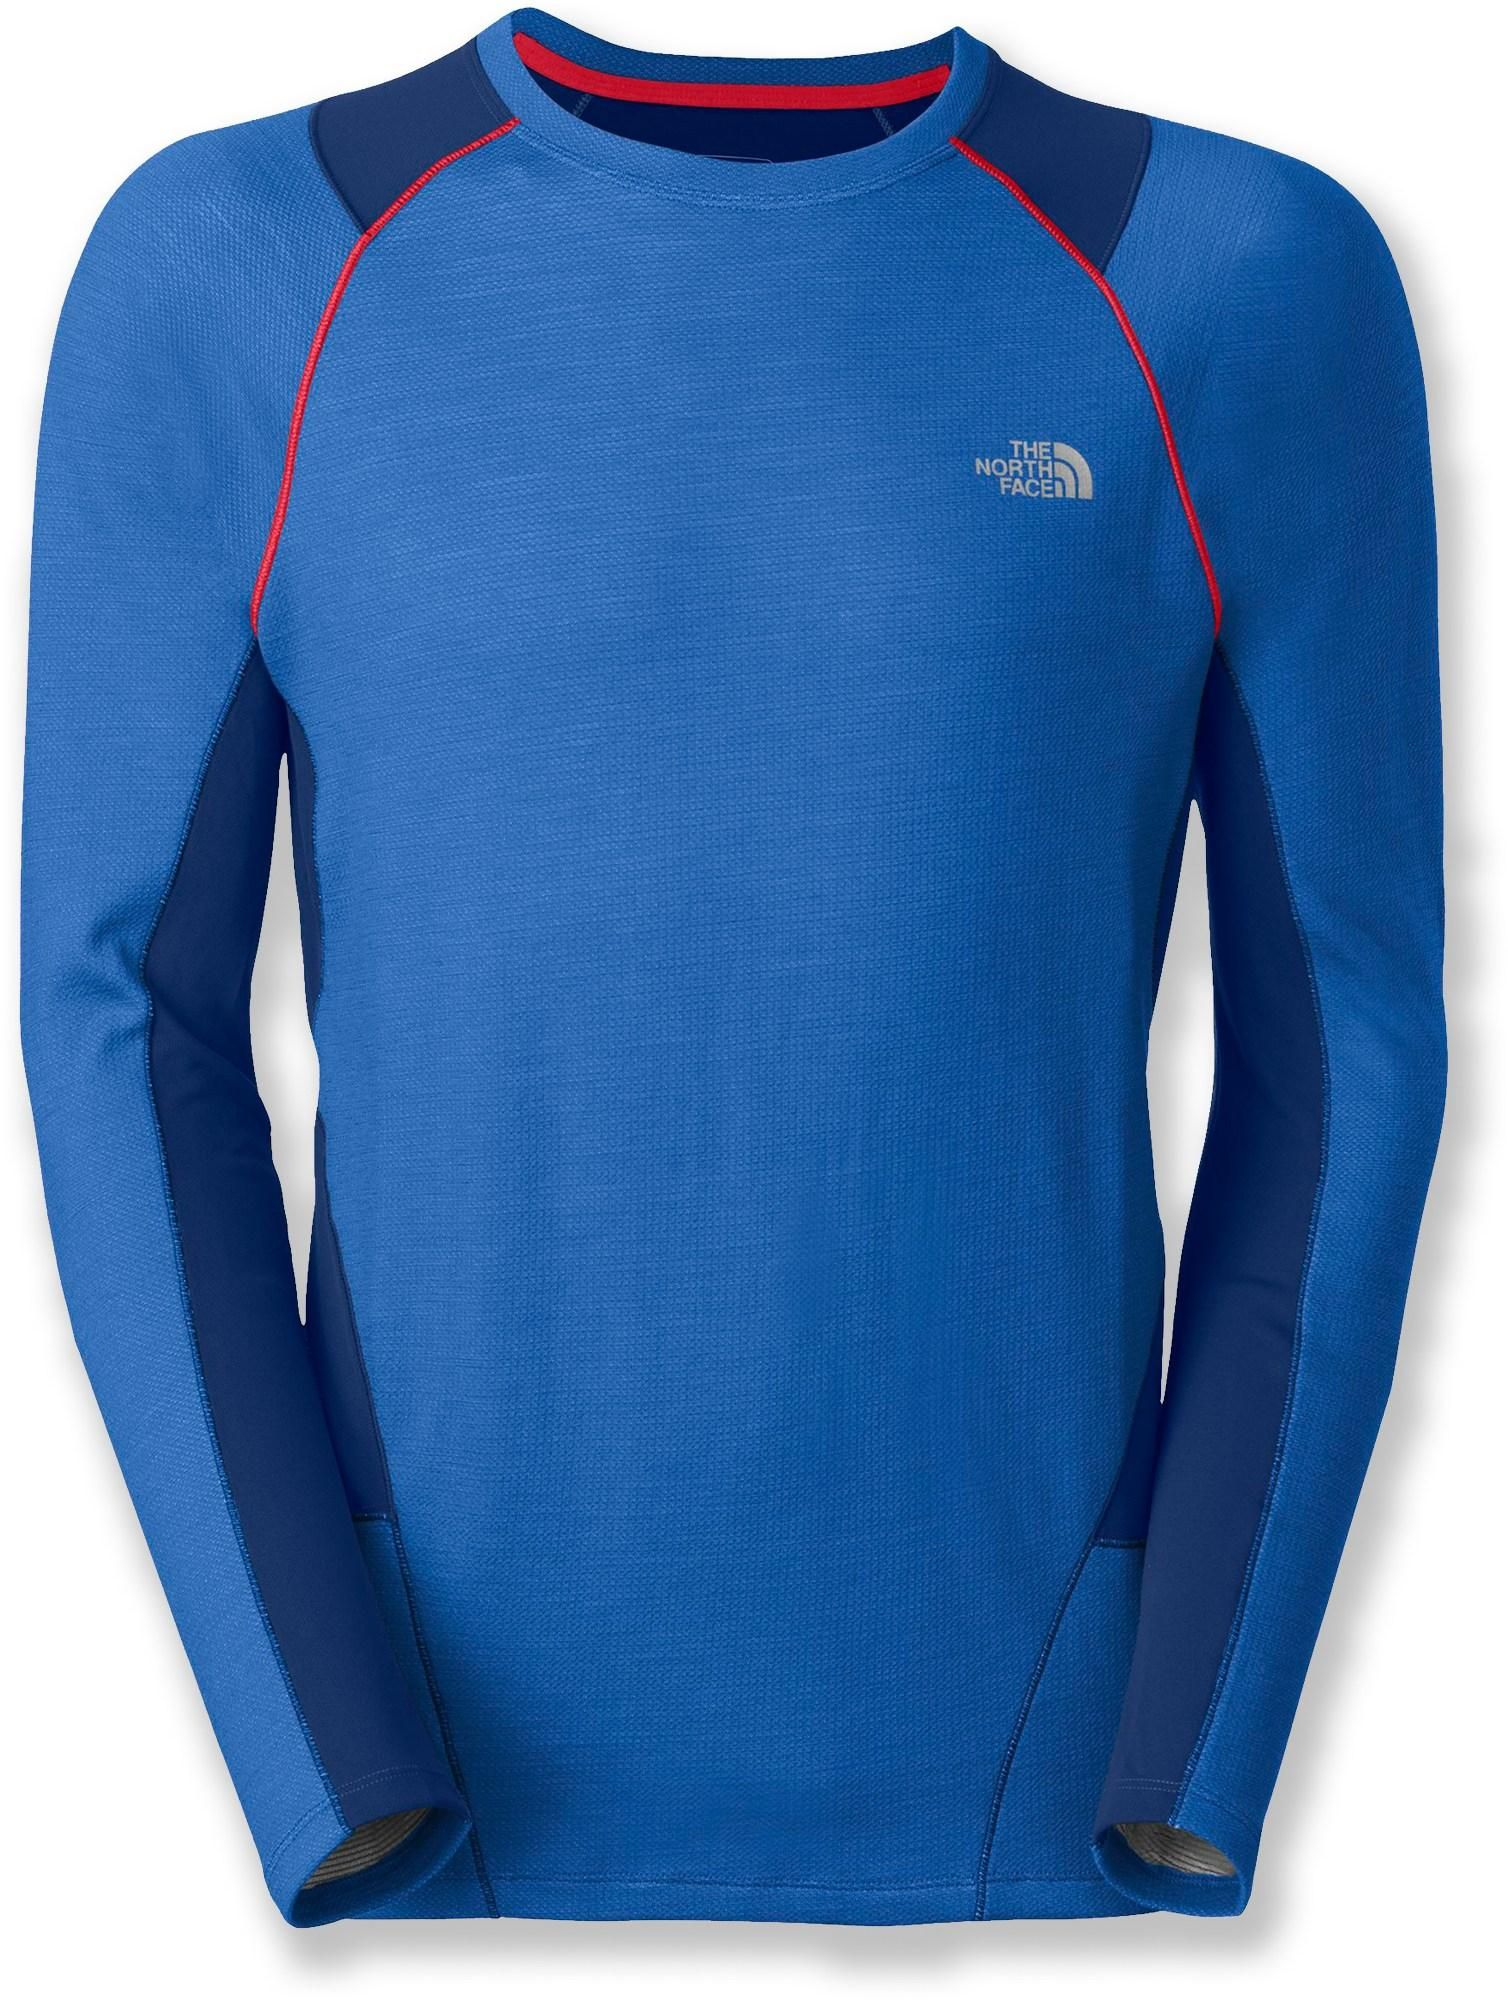 Prepare for challenging crosscountry ski workouts in The